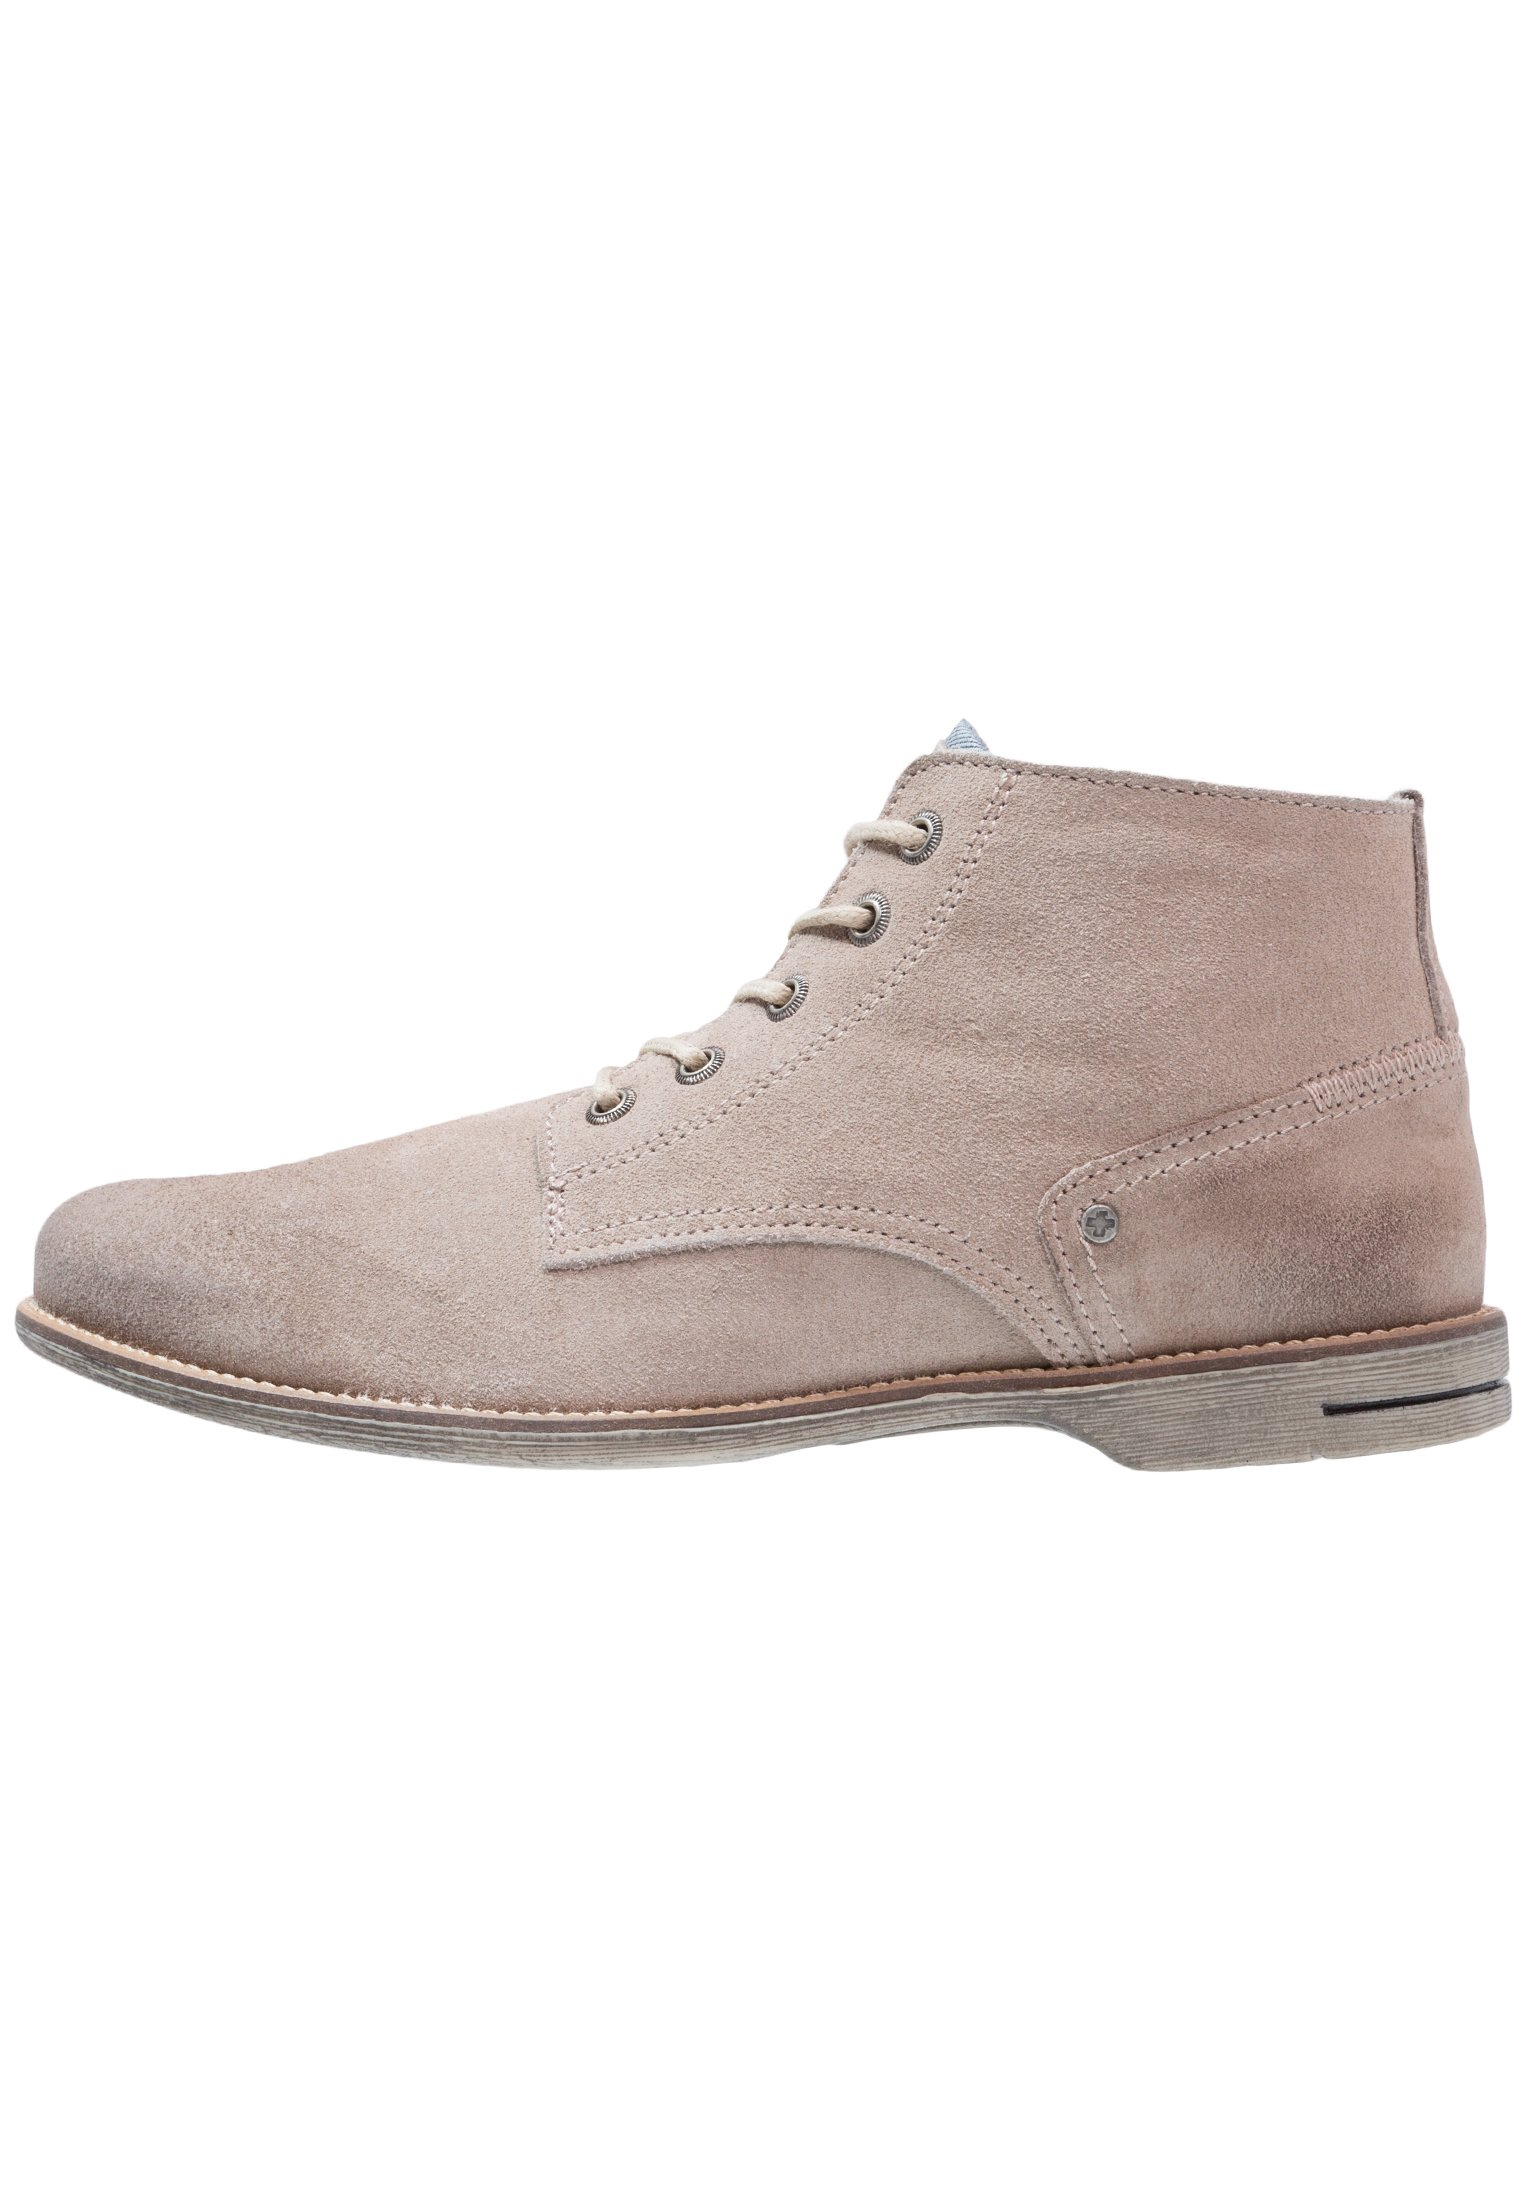 Homme CRASHER - Chaussures à lacets - taupe